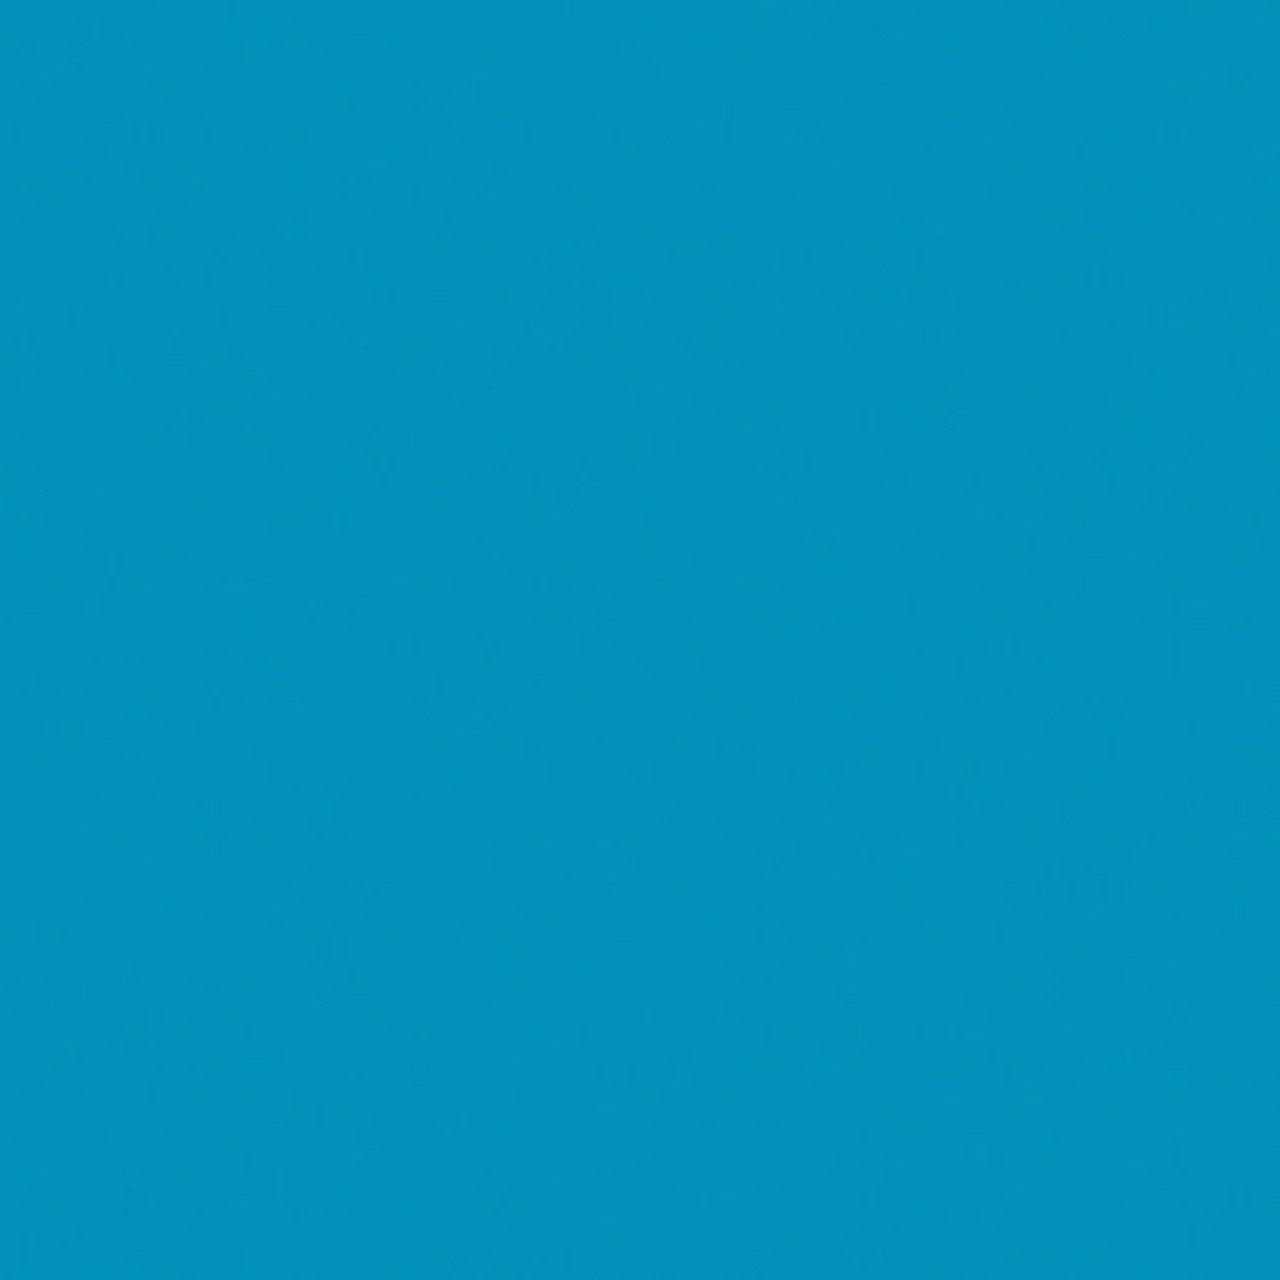 #0071 Rosco Gels Roscolux Sea Blue, 20x24""